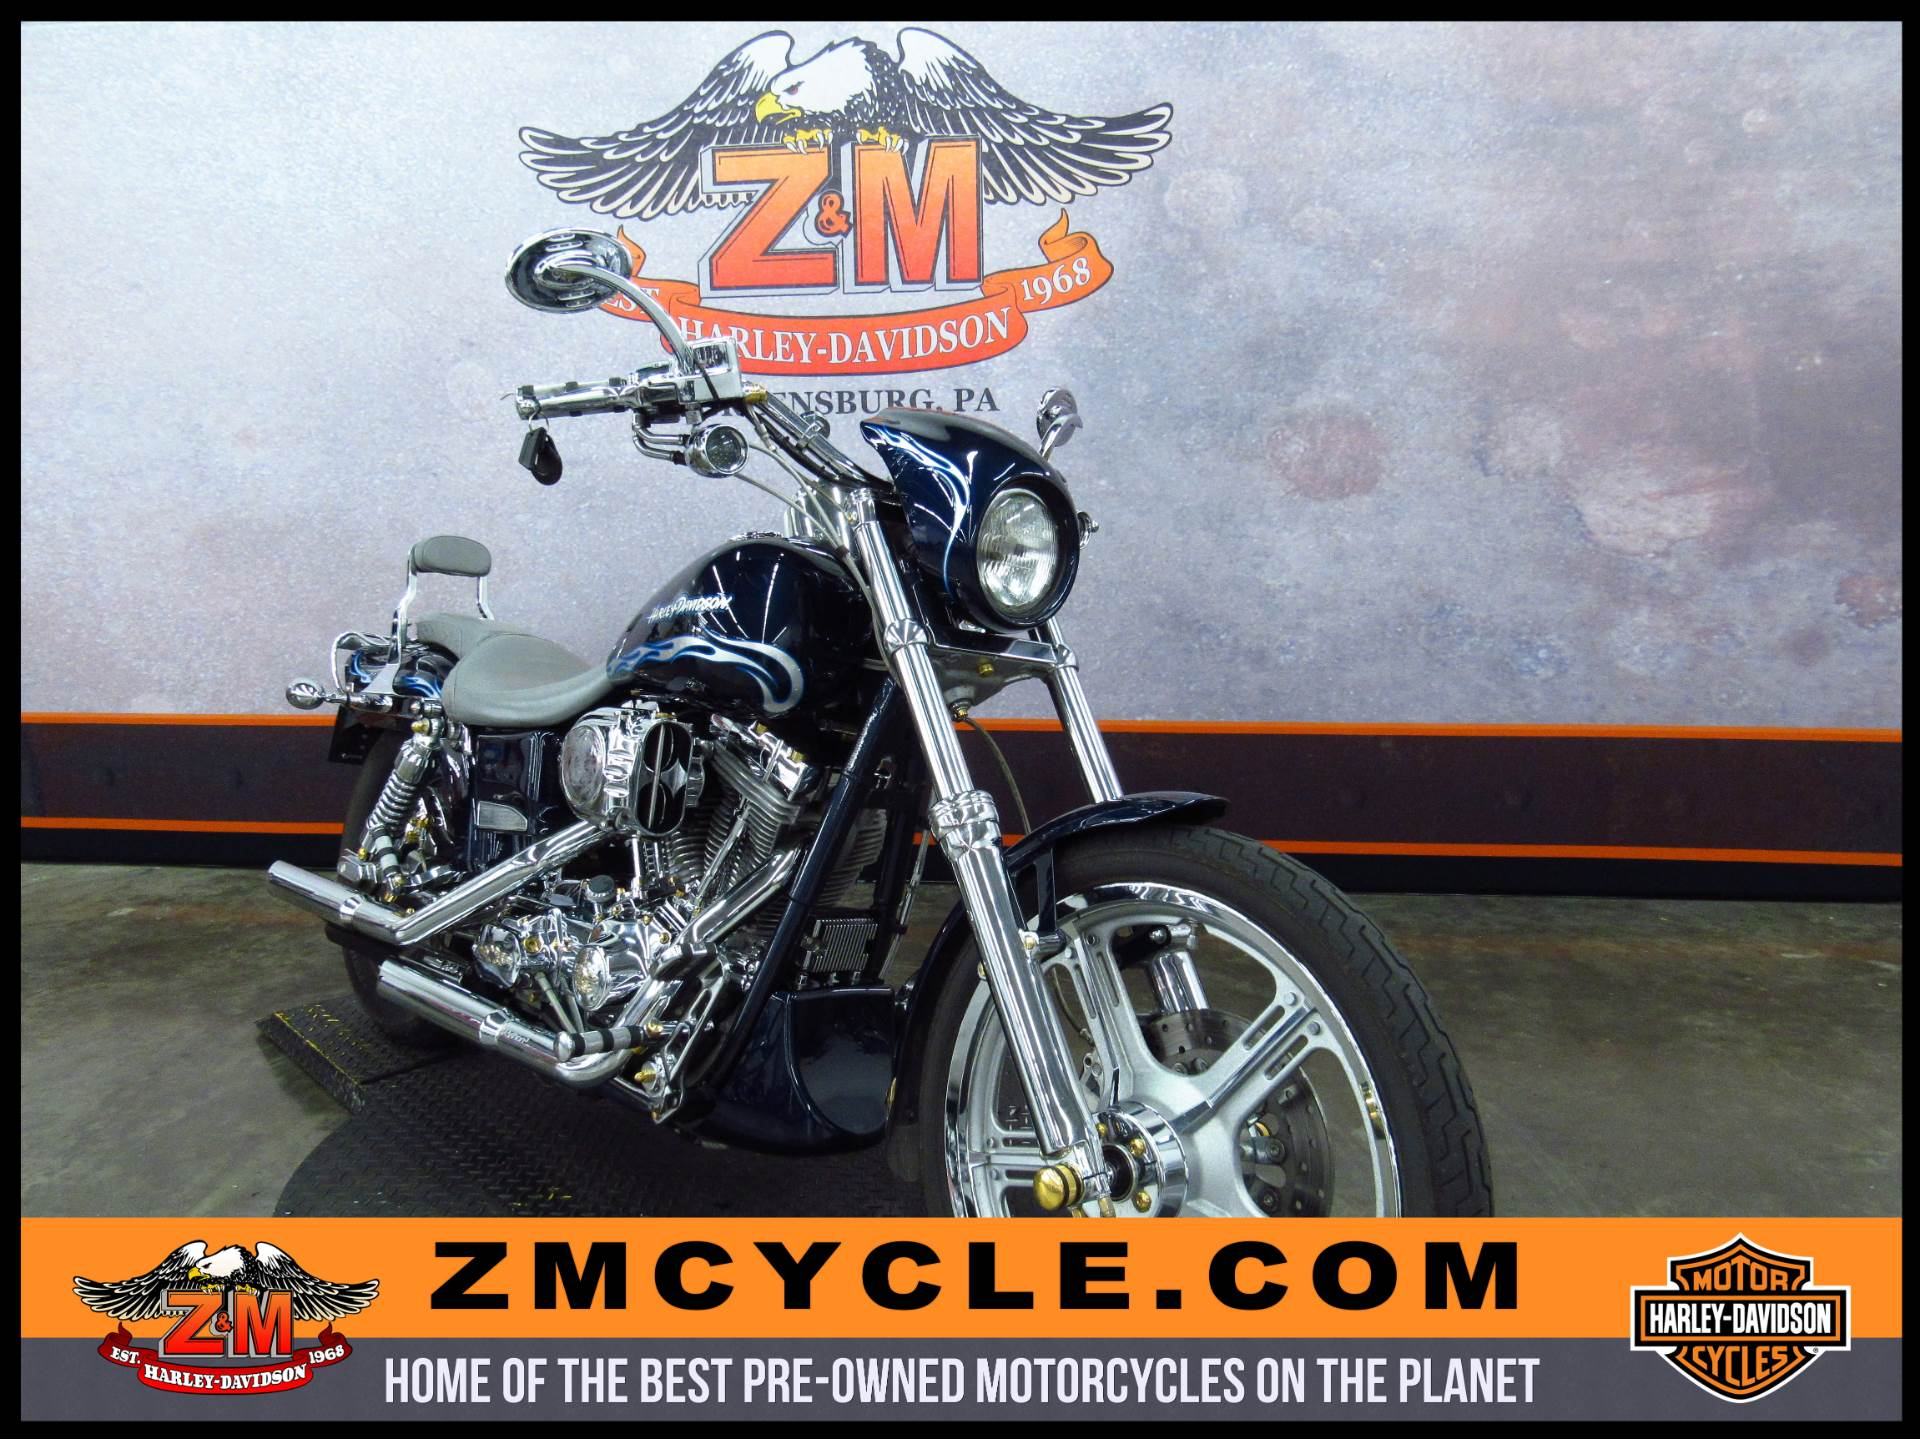 2002 FXDWG Dyna Wide Glide